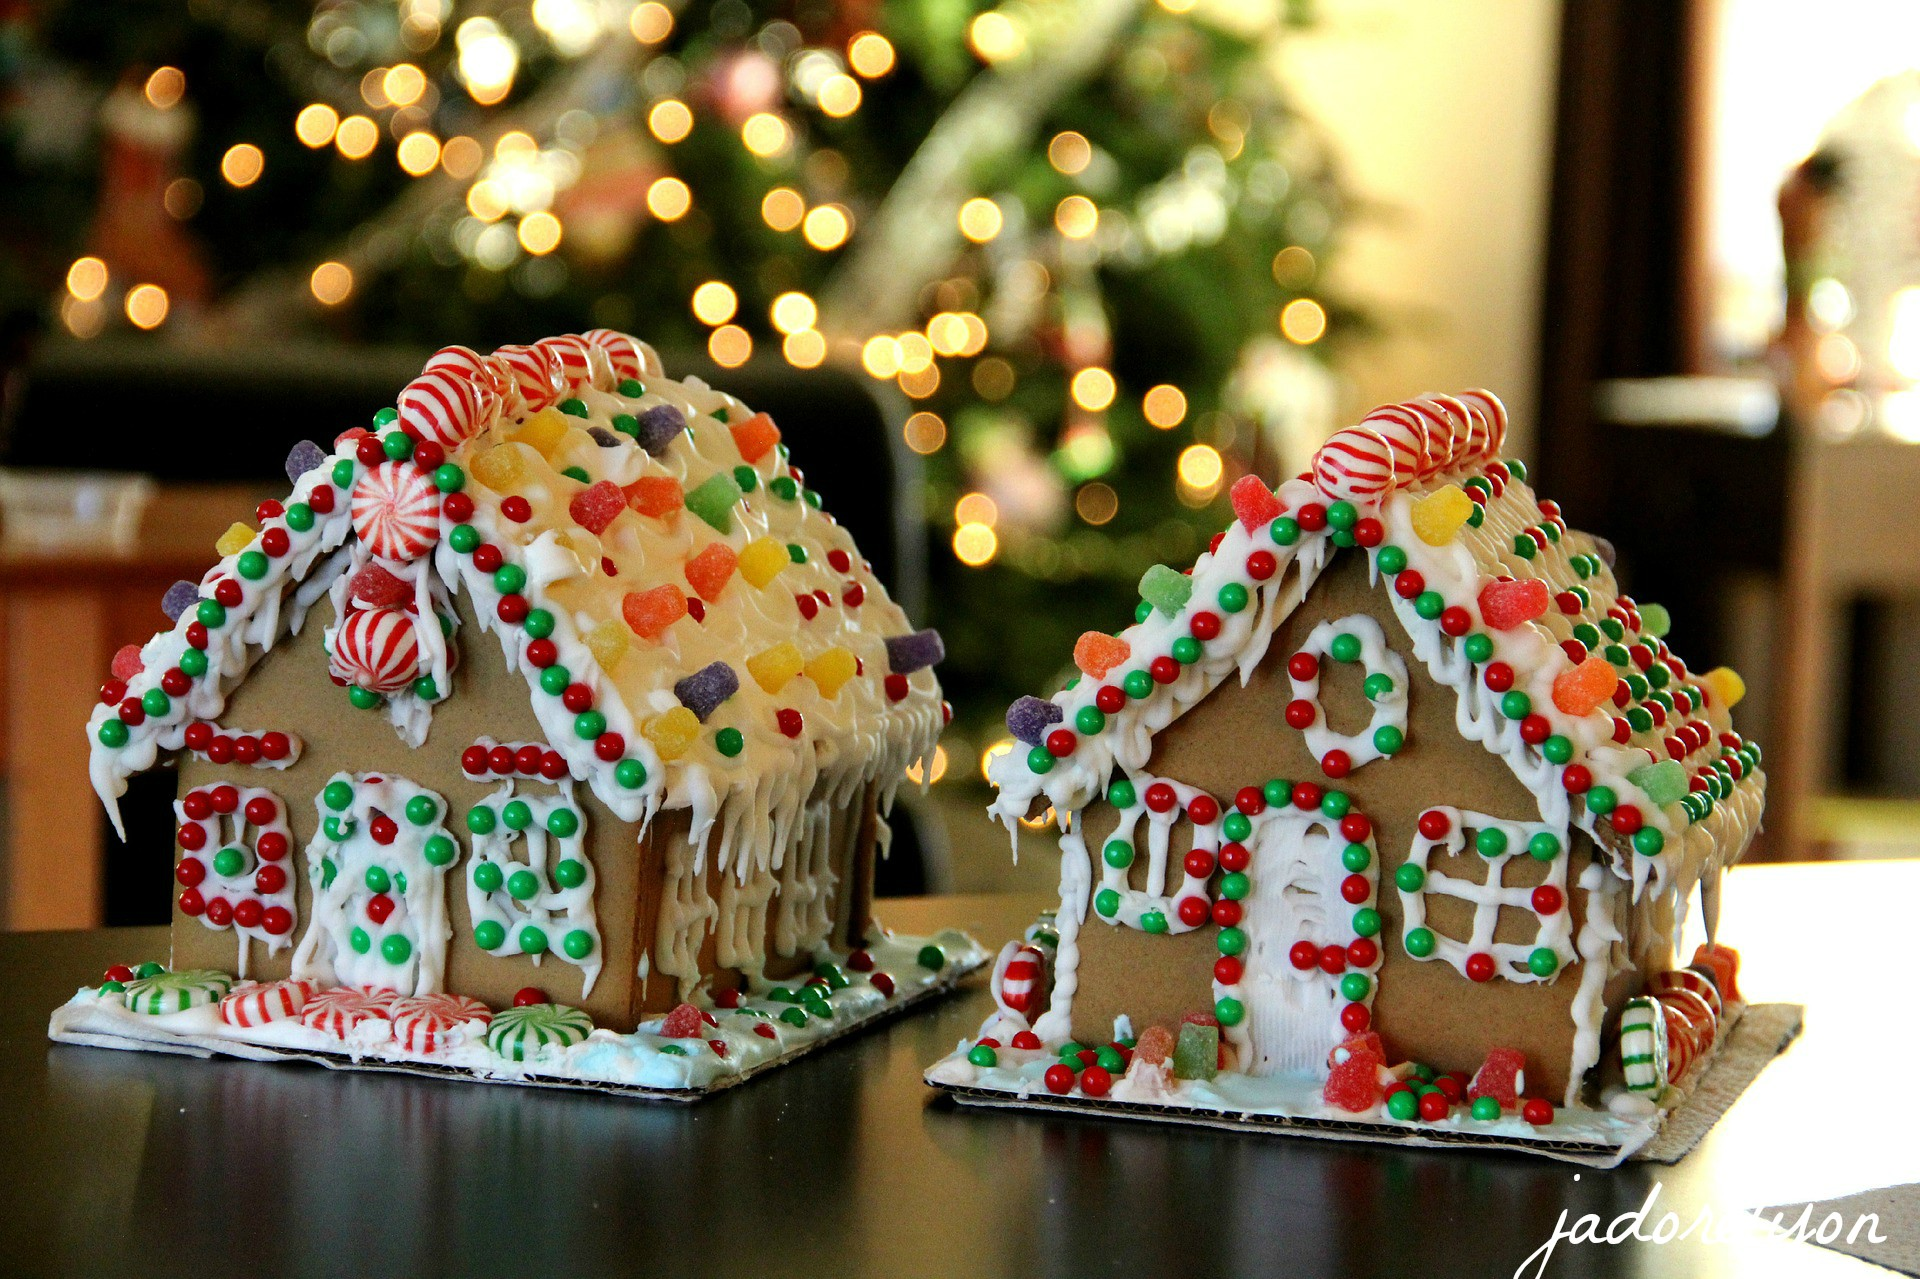 Cook & bake everything winter and Christmas inspired. Not only this delicious Gingerbread House!